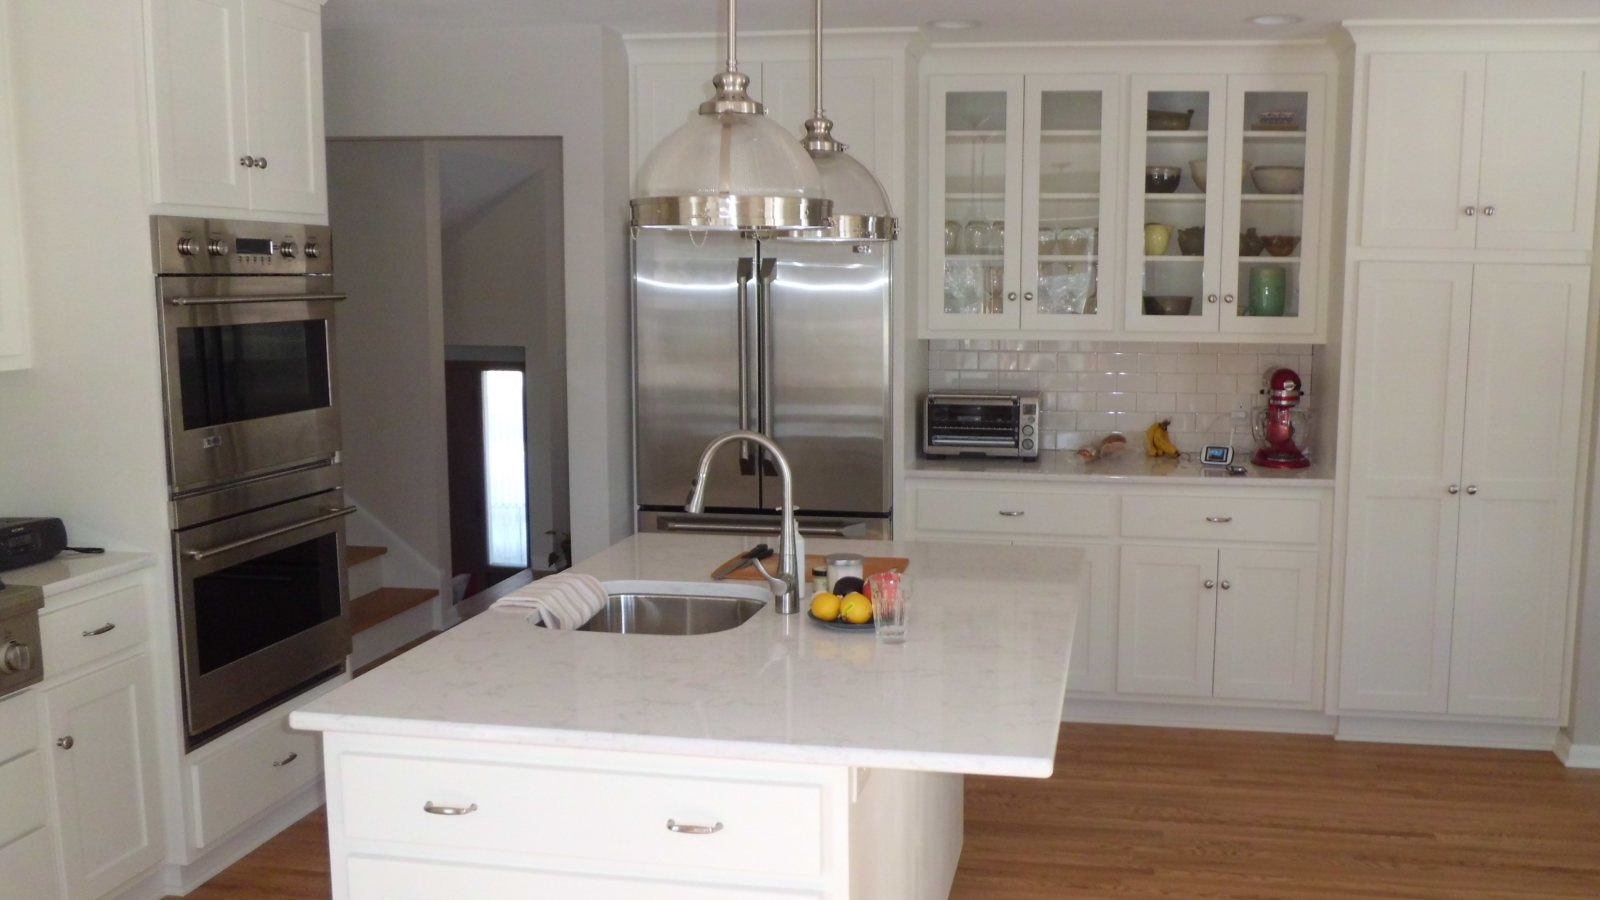 Kitchen Remodel  Before  After Photos  Home Check Plus